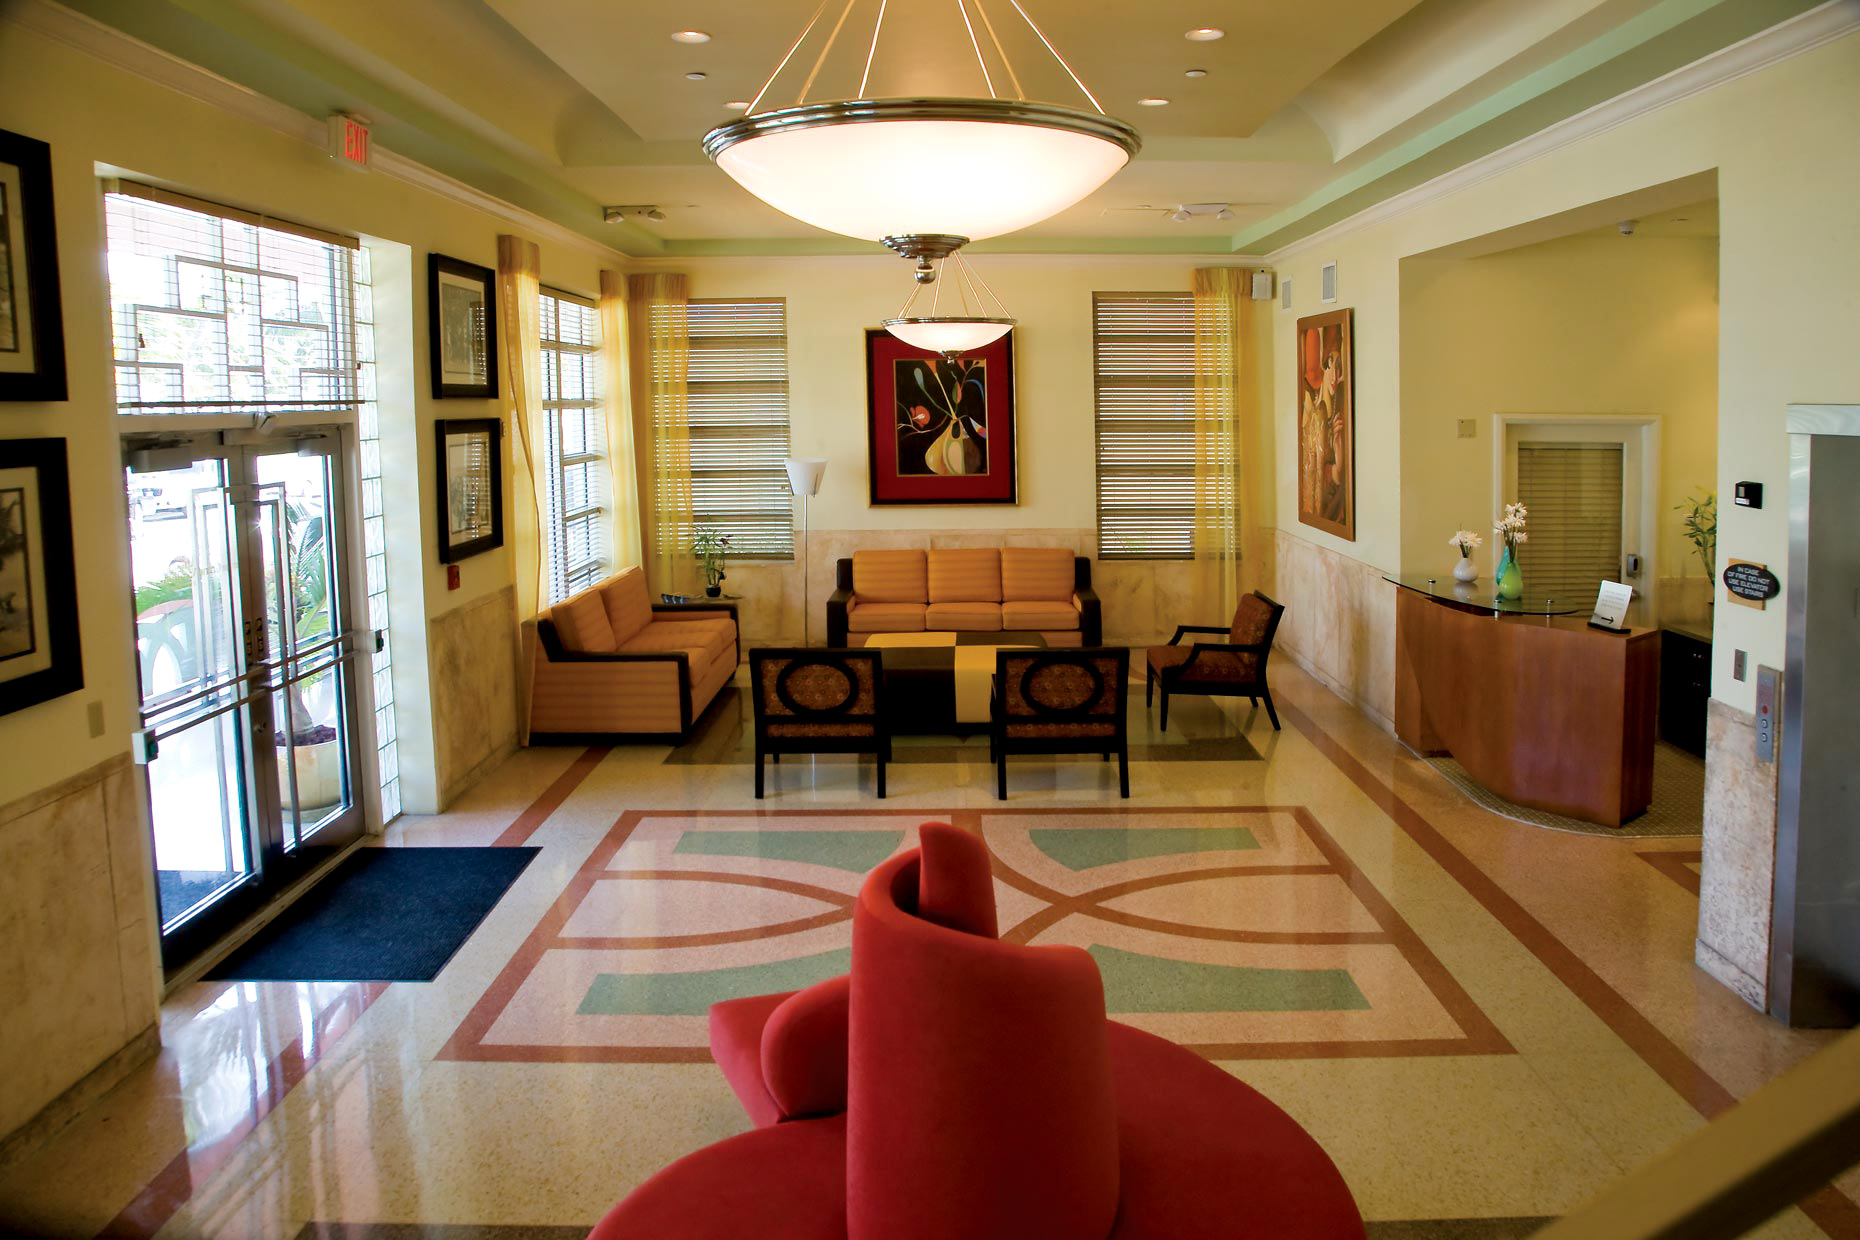 Hotel & Resort Photography | South Beach Hotel Lobby Interior